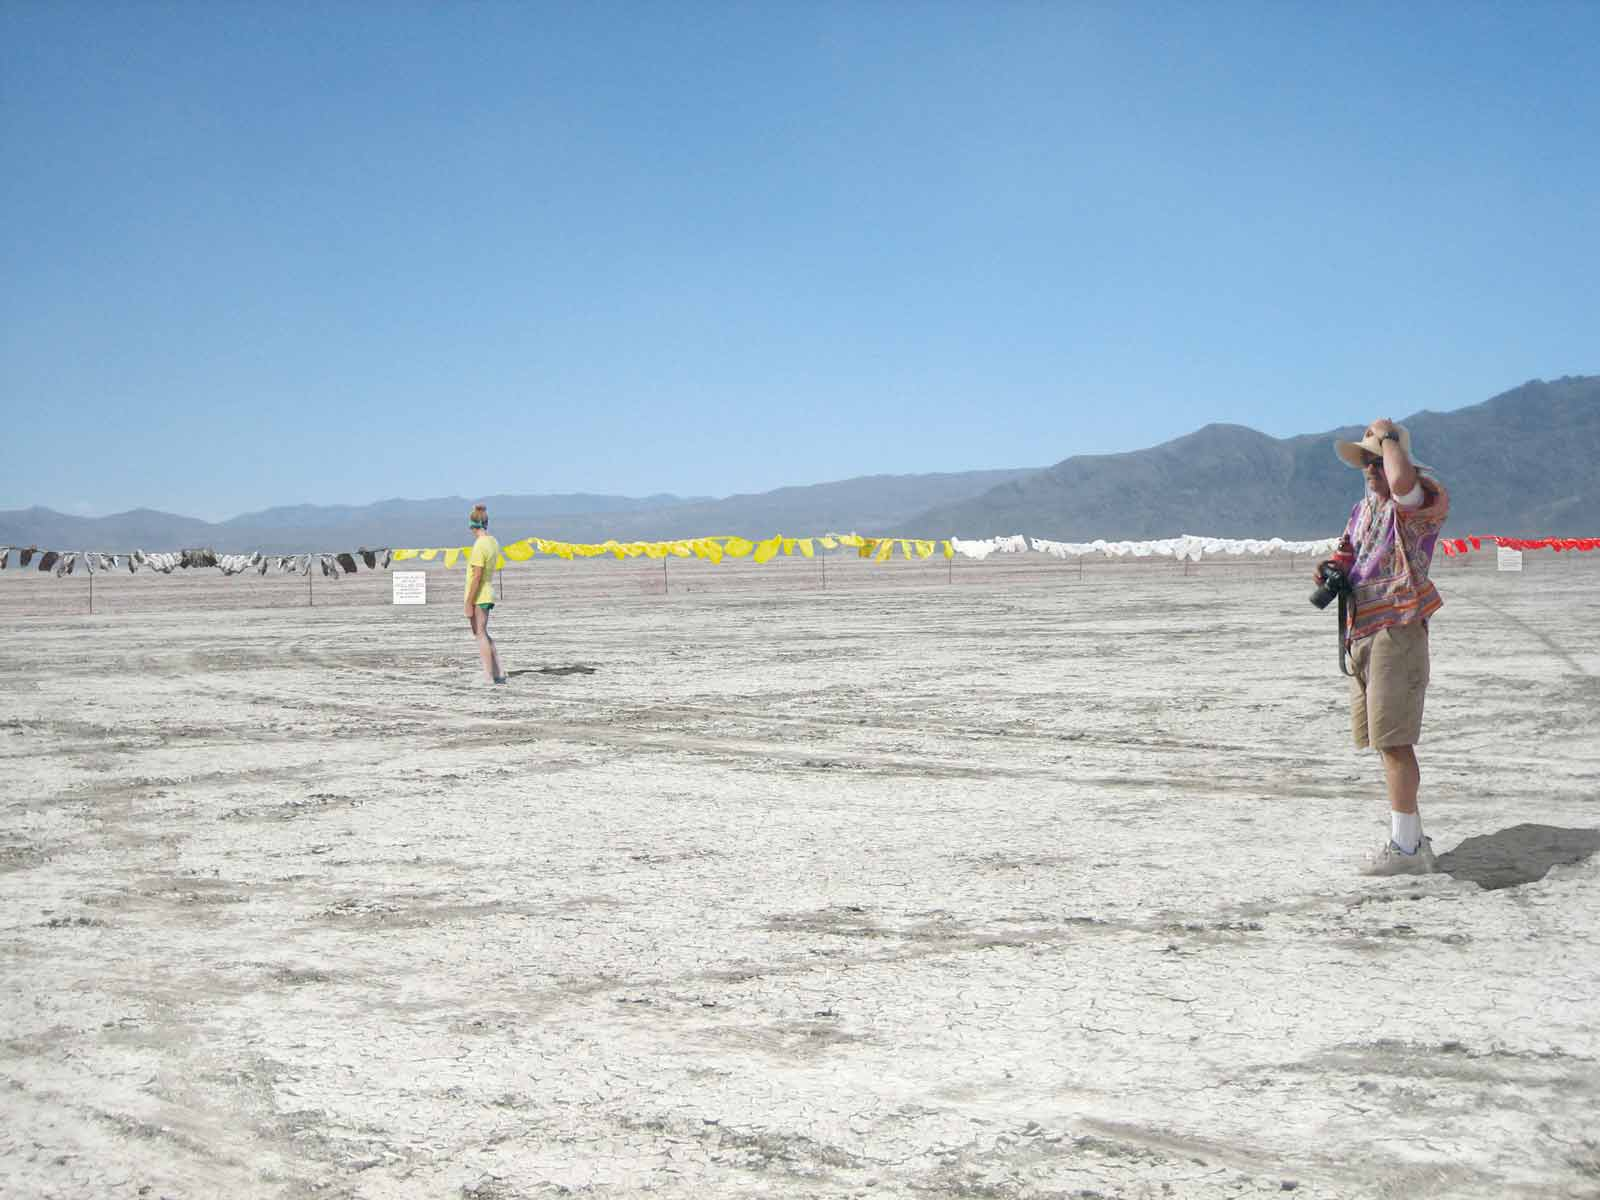 mslk-Tumbleweeds-burning-man-trash-Fence_3b